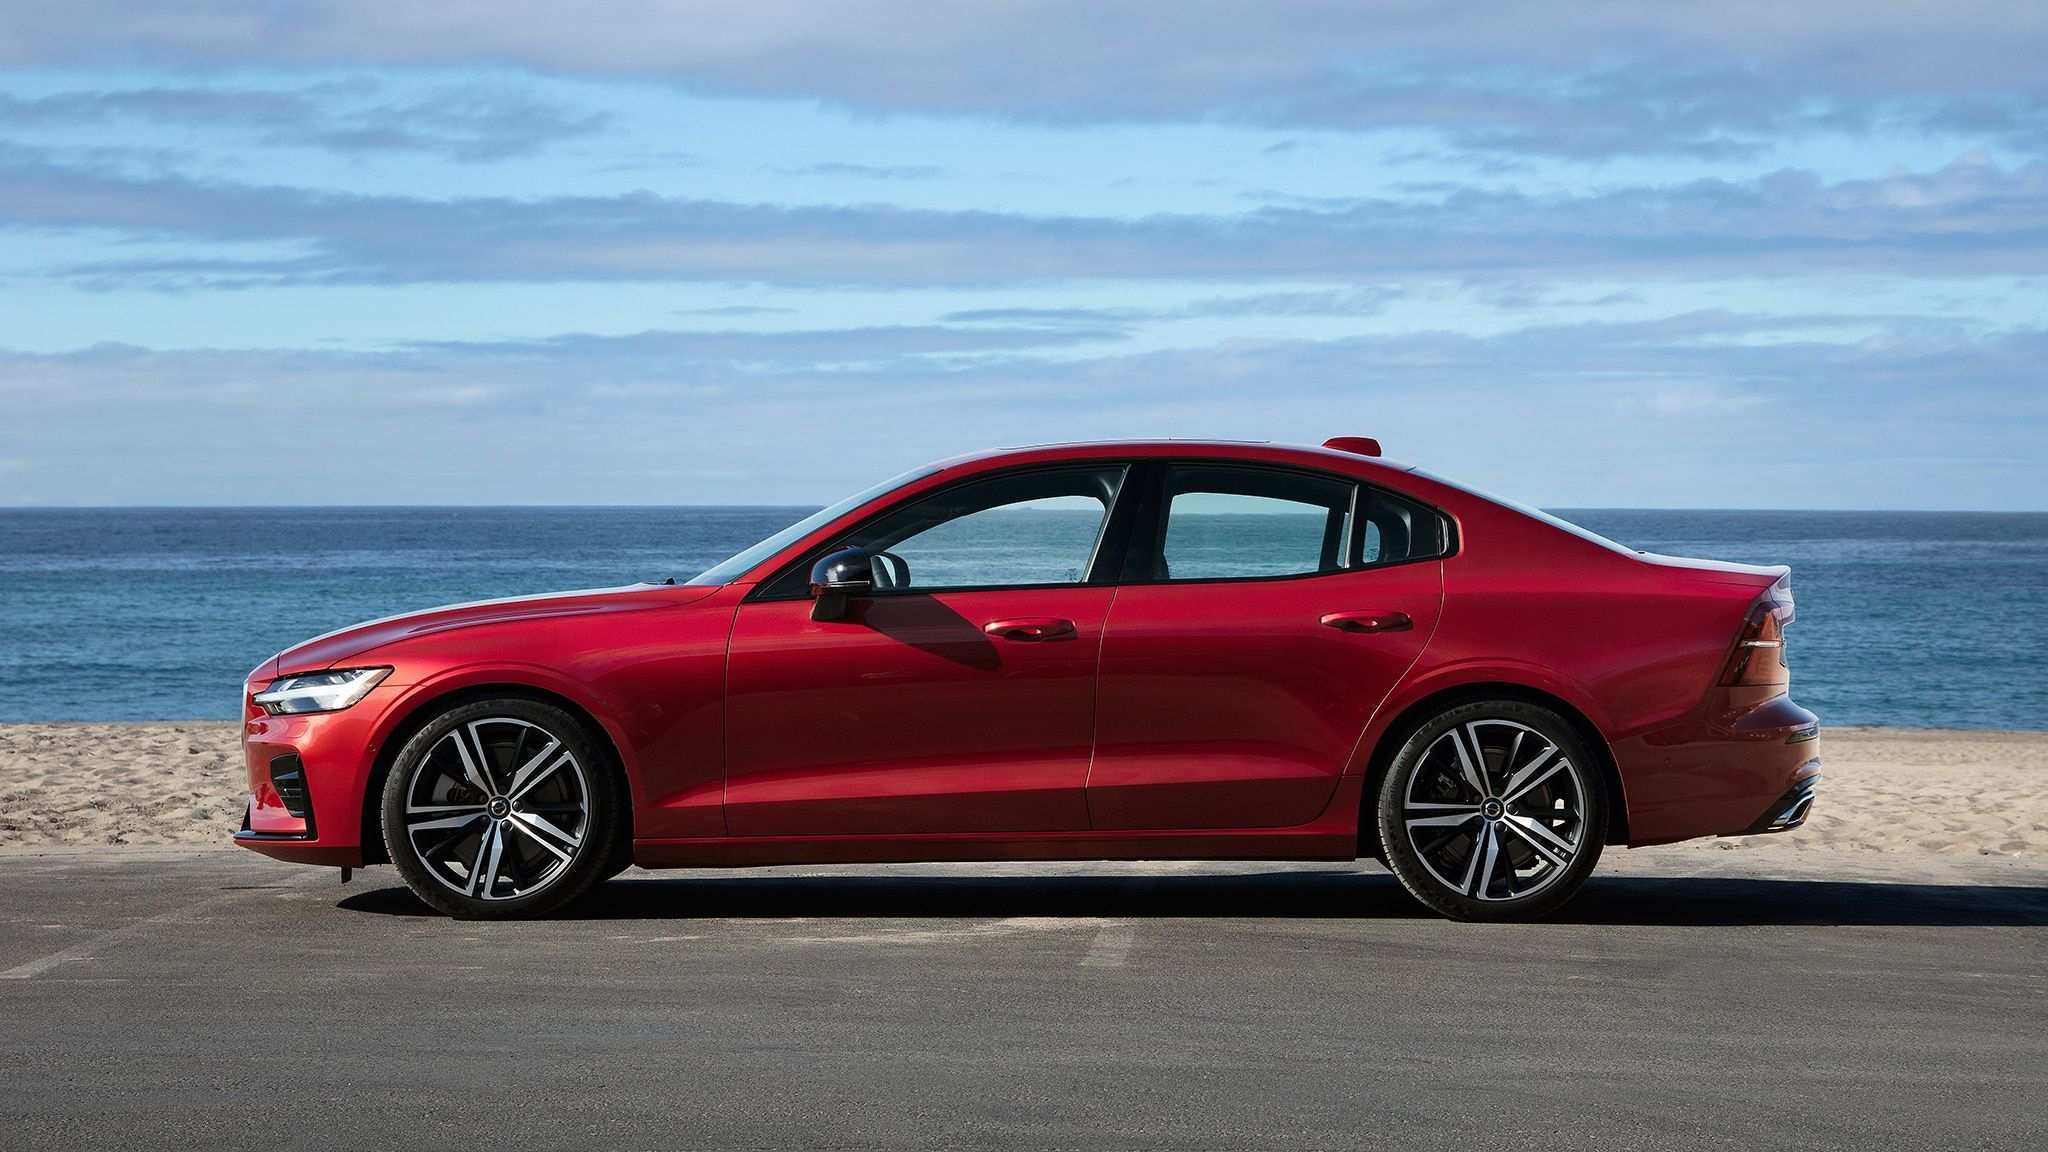 13 Concept of New Review Of 2019 Volvo S60 Spesification Overview by New Review Of 2019 Volvo S60 Spesification